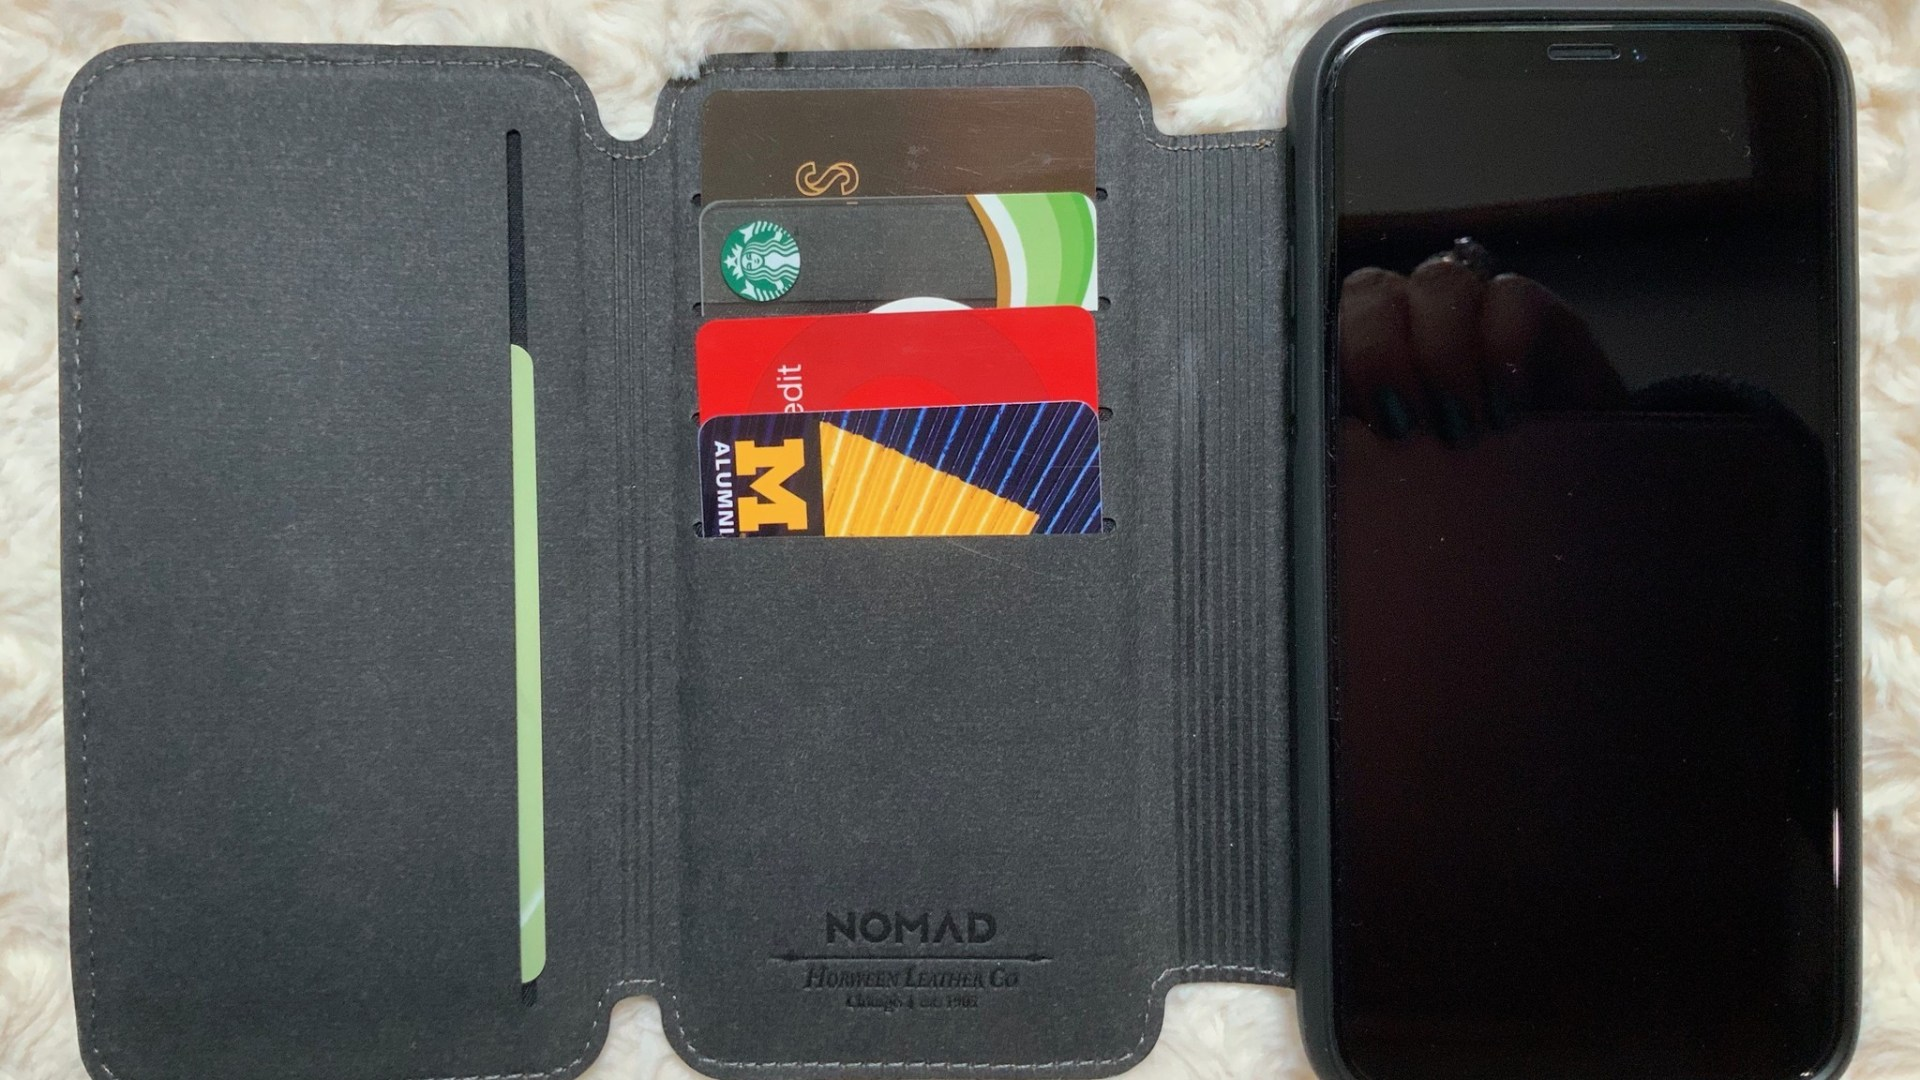 Nomad's Rugged Tri-Folio iPhone Wallet Case review: Deluxe wallet folio